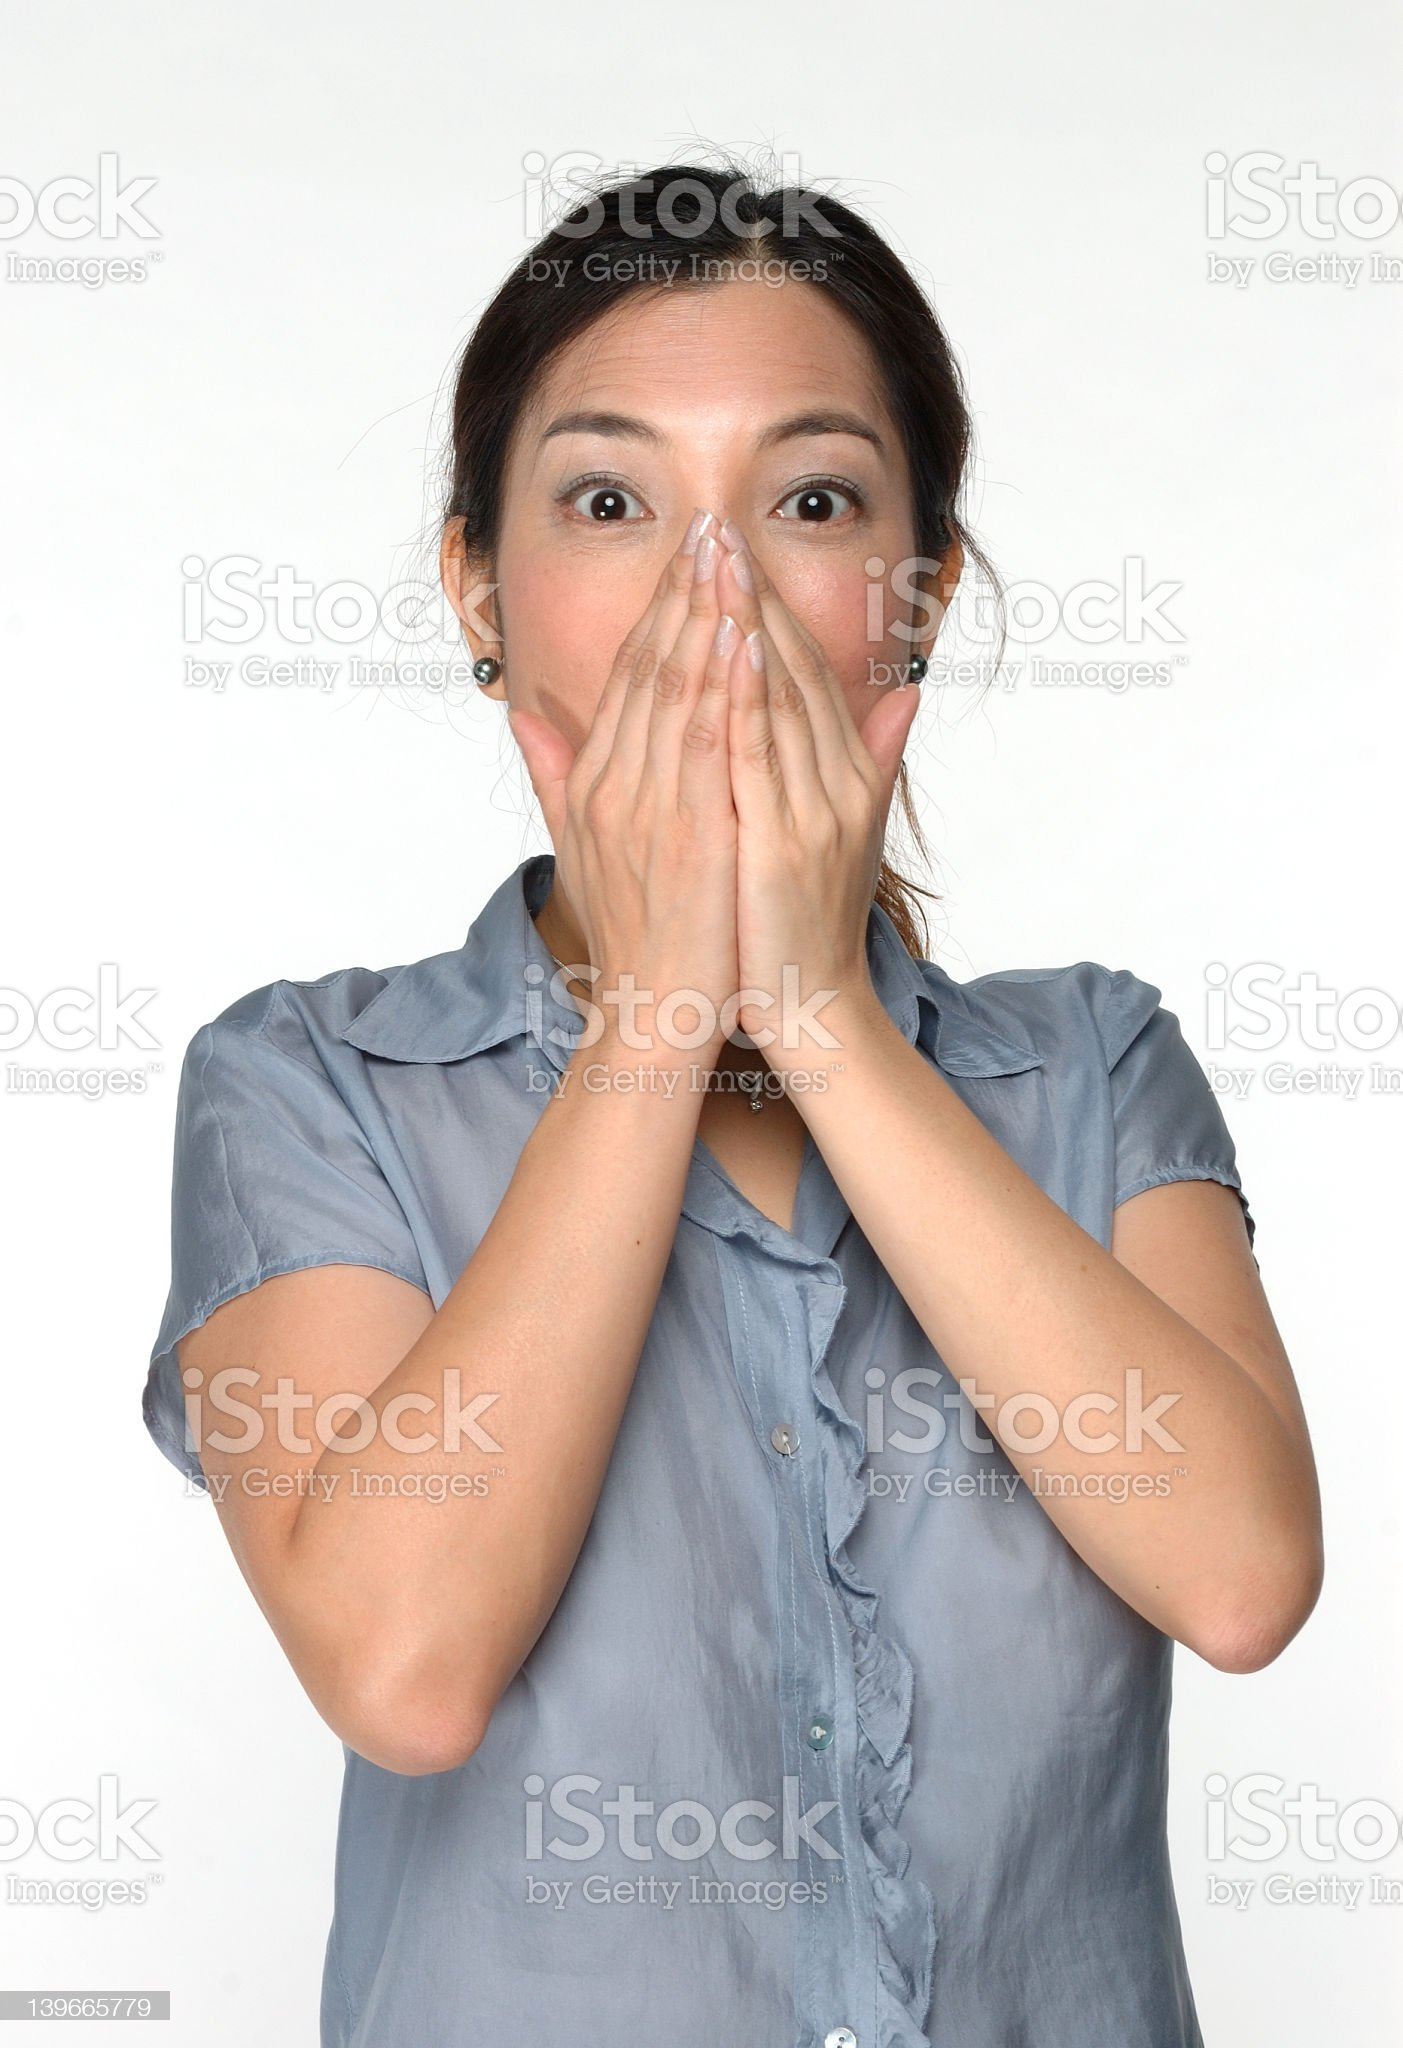 Surprised Asian woman on white background royalty-free stock photo